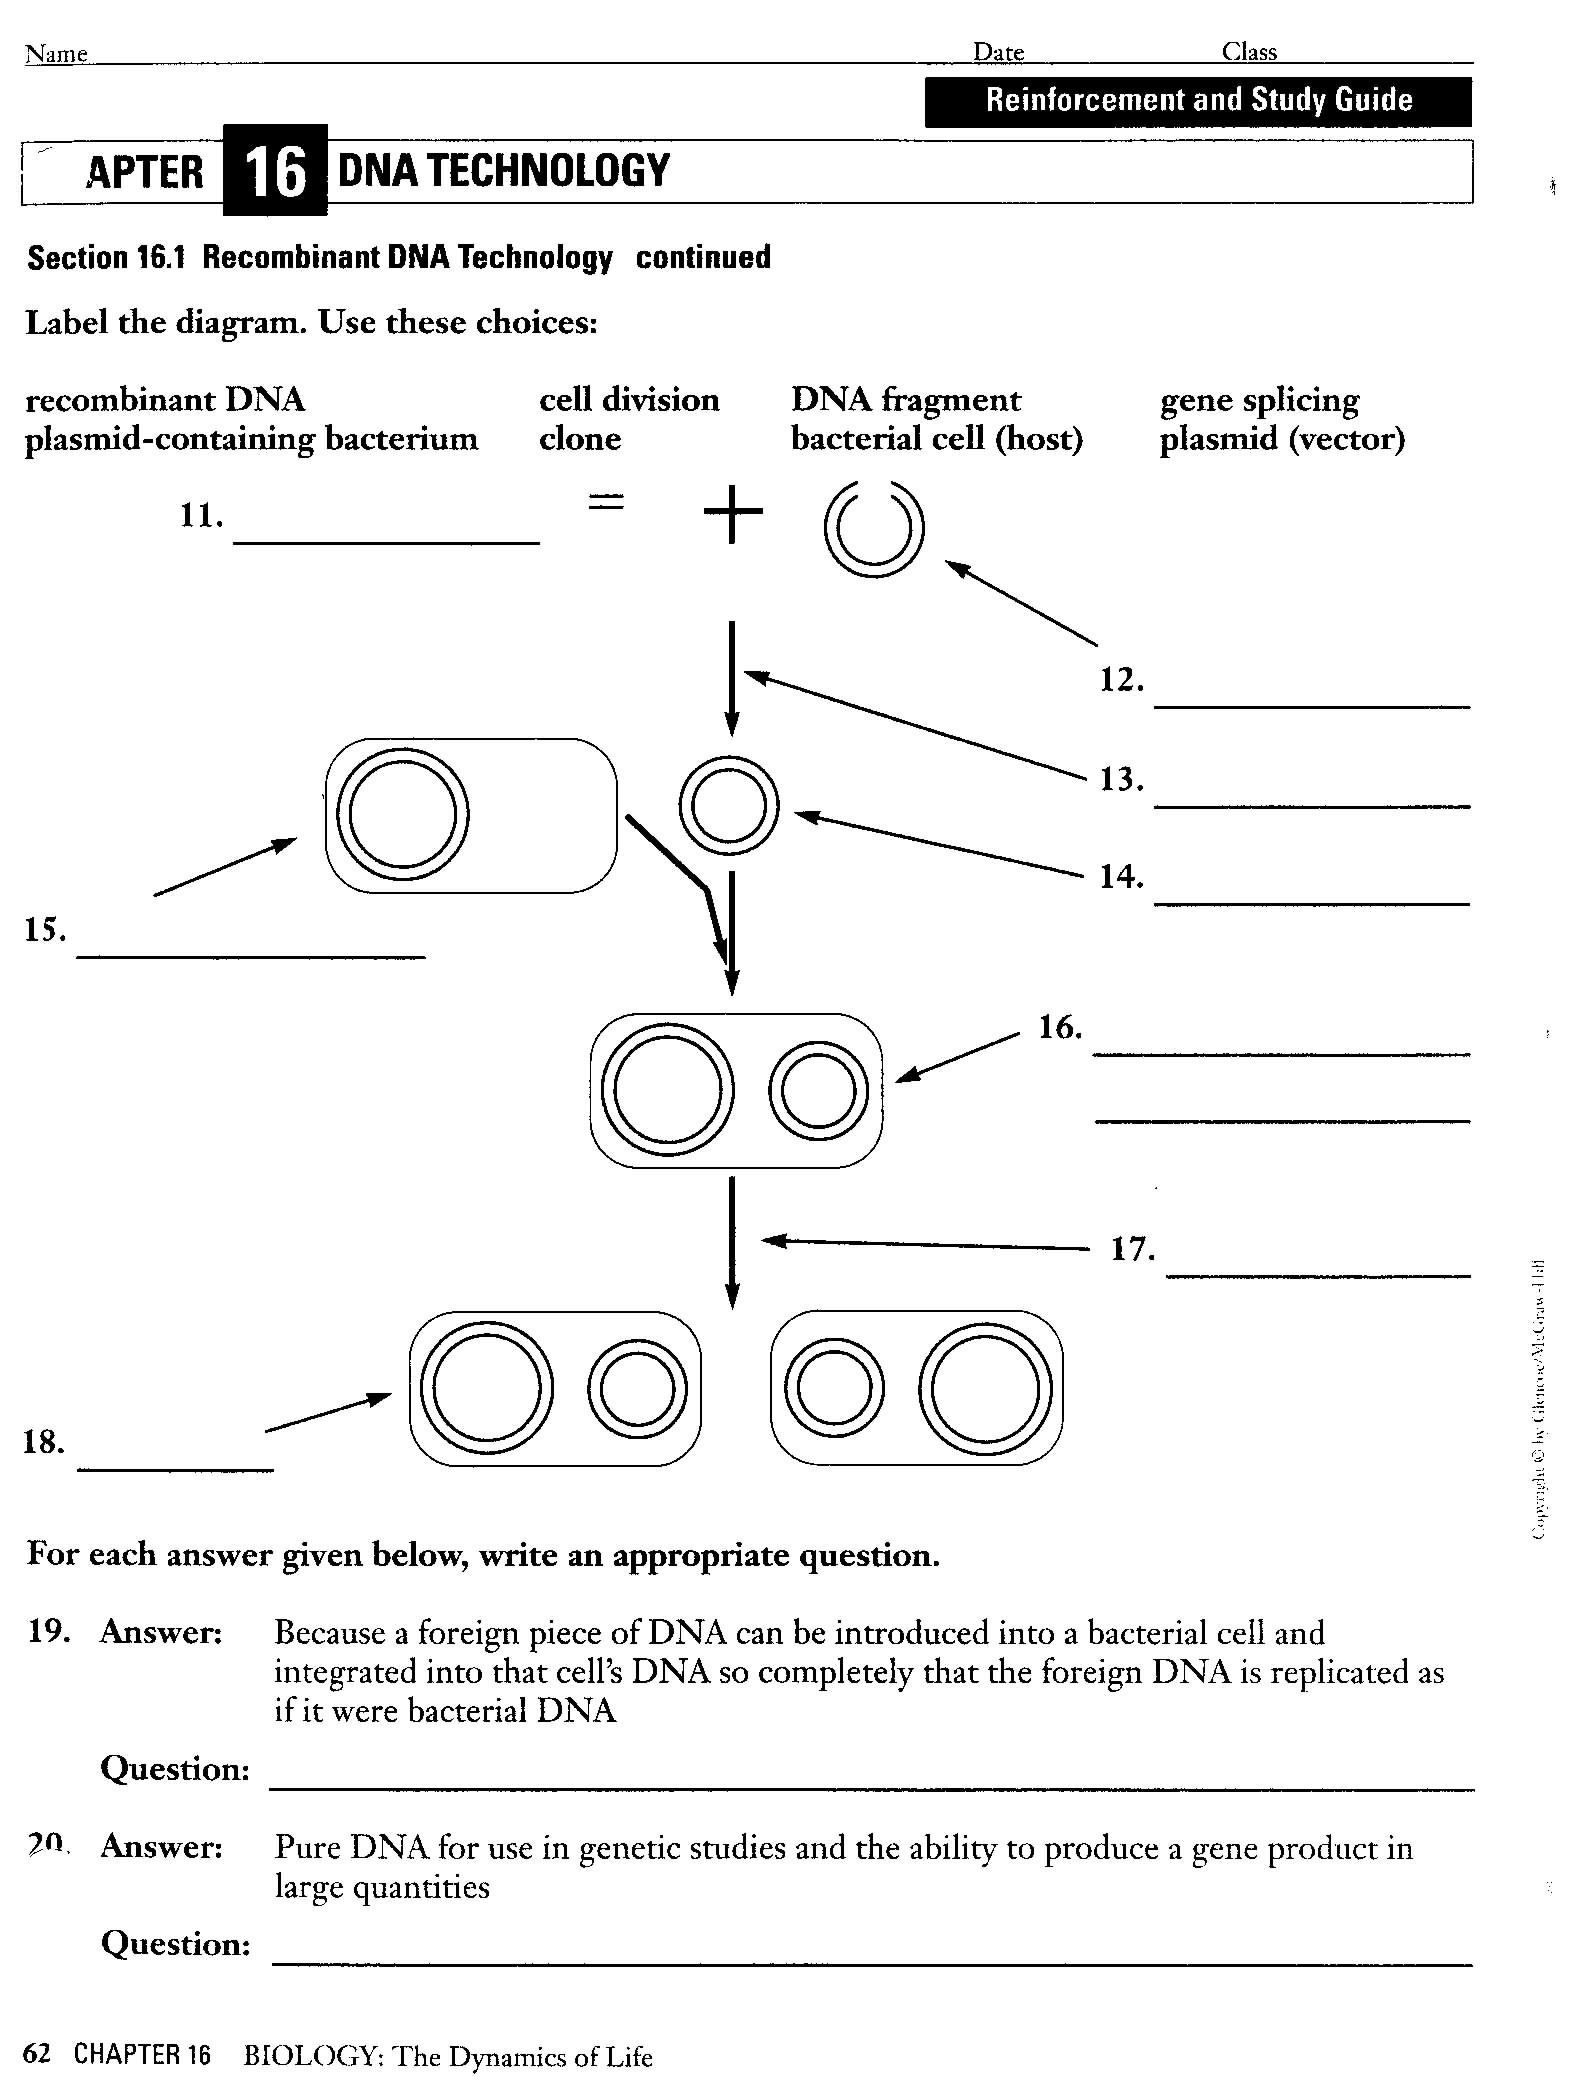 Selective Breeding Worksheet Middle School Restriction Enzyme Worksheet Results for Yahoo Image